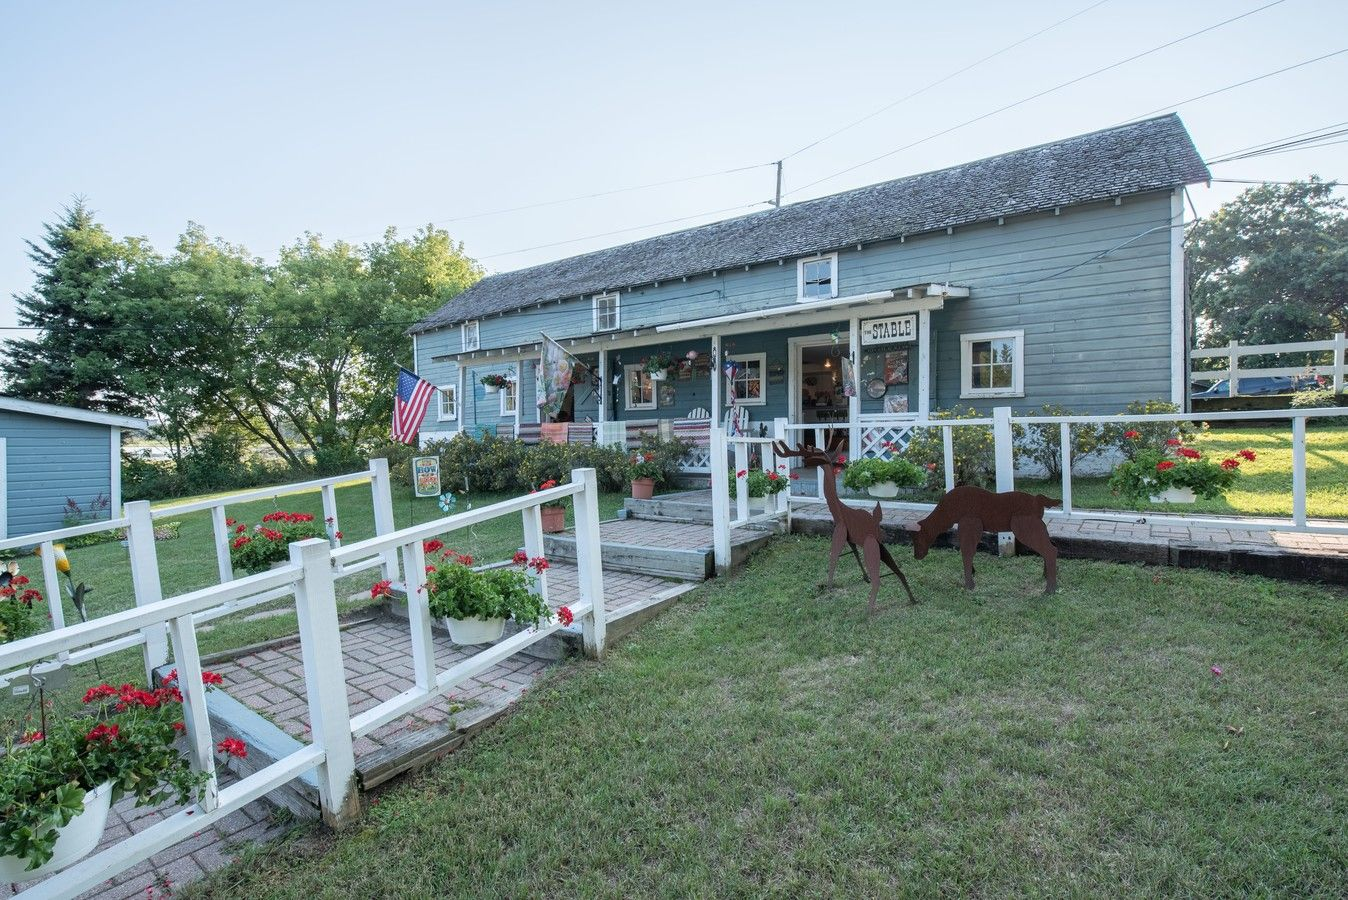 24013 us 71 park rapids mn 56470 property for sale on